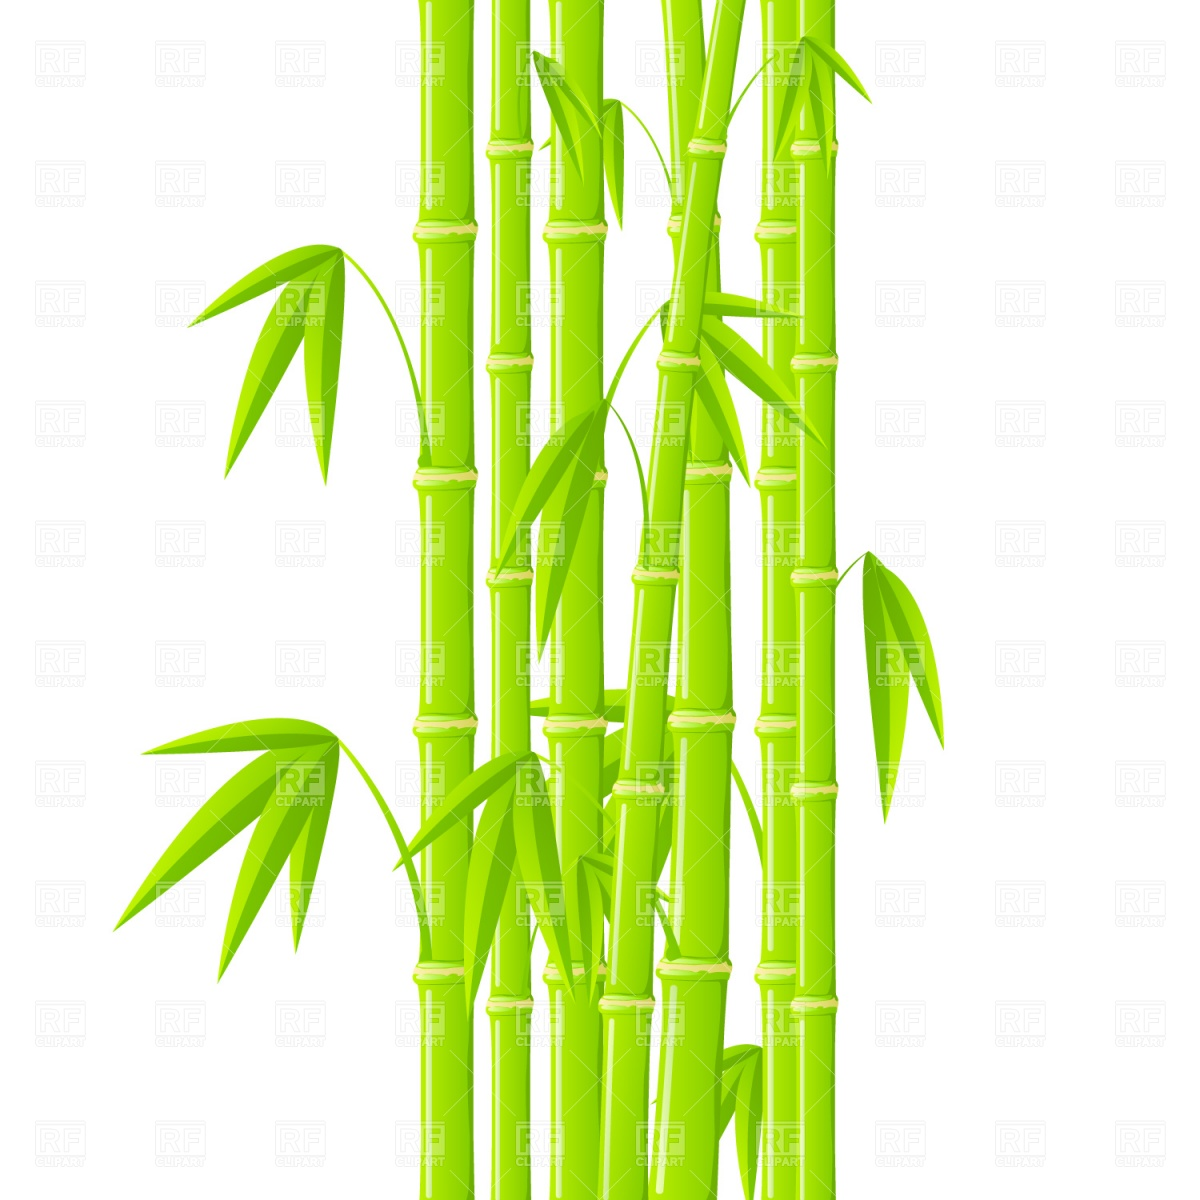 Green Bamboo Stems With Leaves Download Royalty Free Vector Clipart